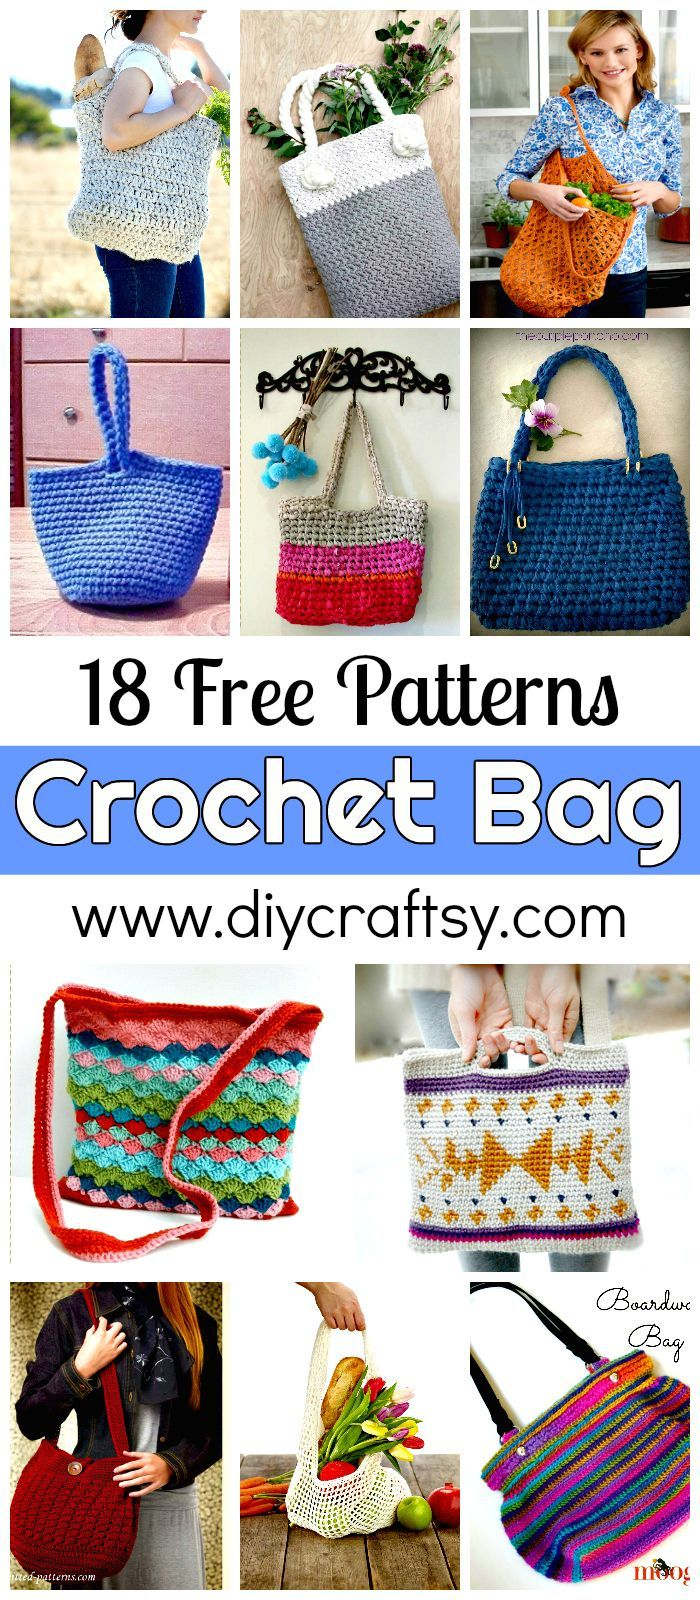 18 Free Crochet Bag Patterns / Crochet Tote Bags - DIY & Crafts